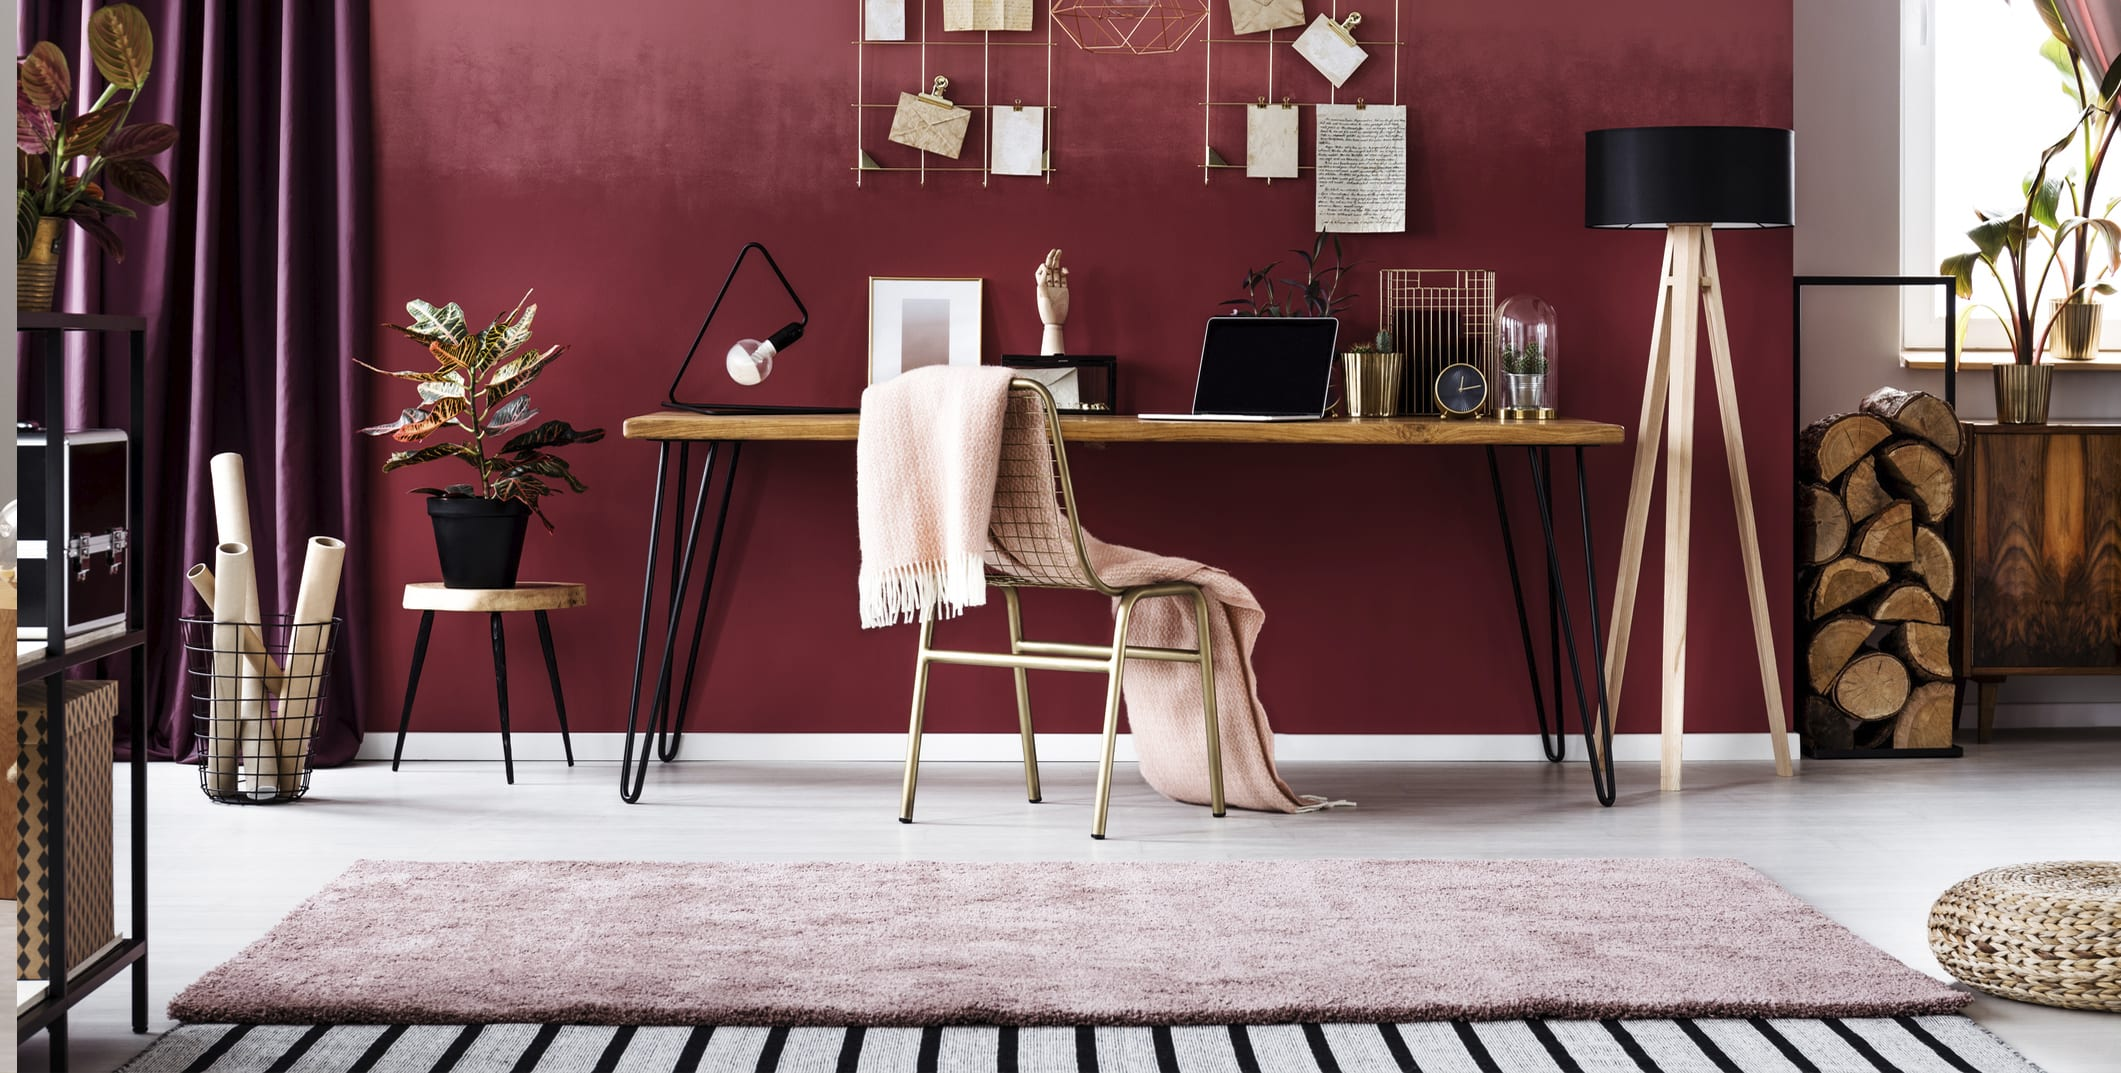 Make Your Home Office Homier with an Accent Throw or Rug